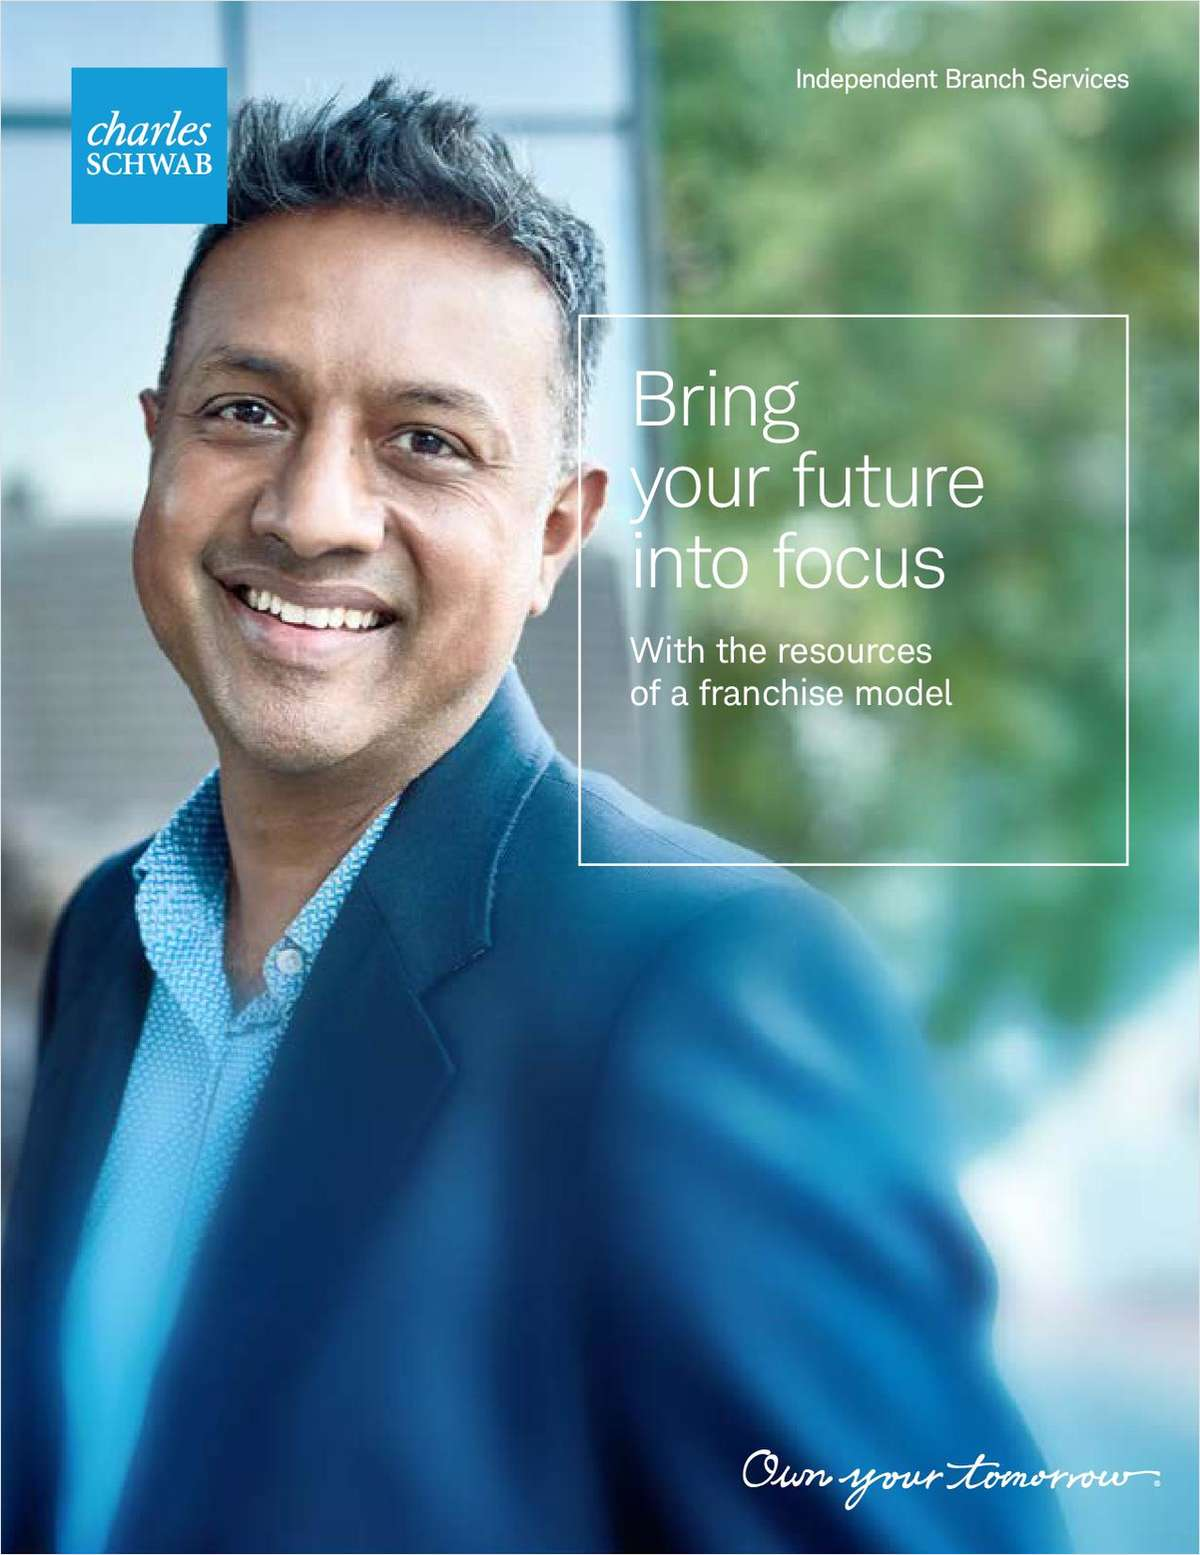 Bring Your Future Into Focus With the Resources of a Franchise Model